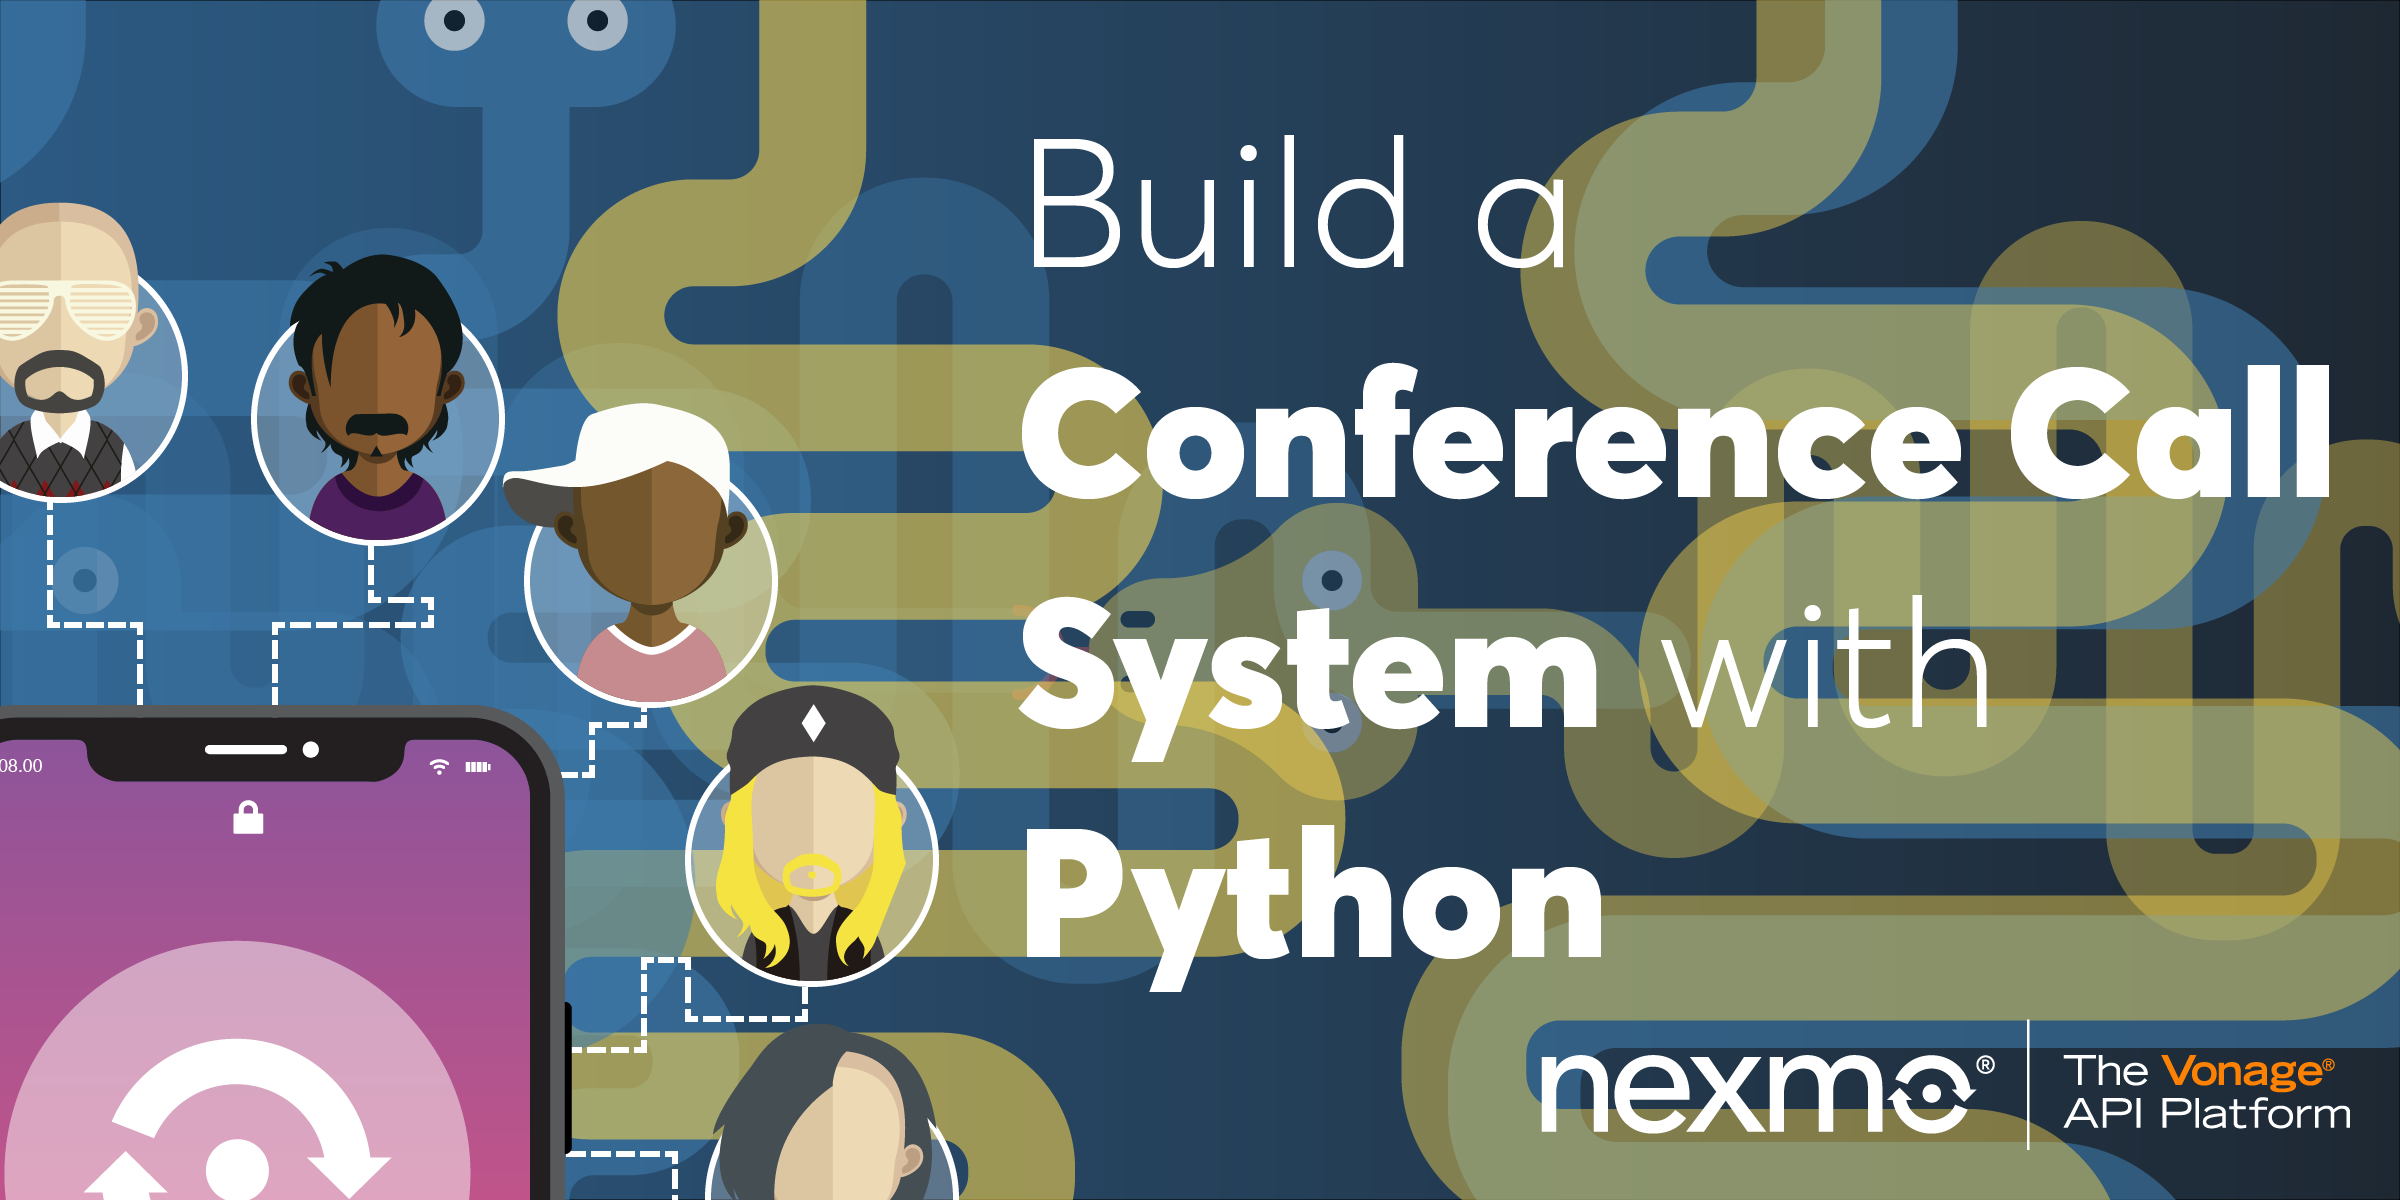 Build a conference call with Python